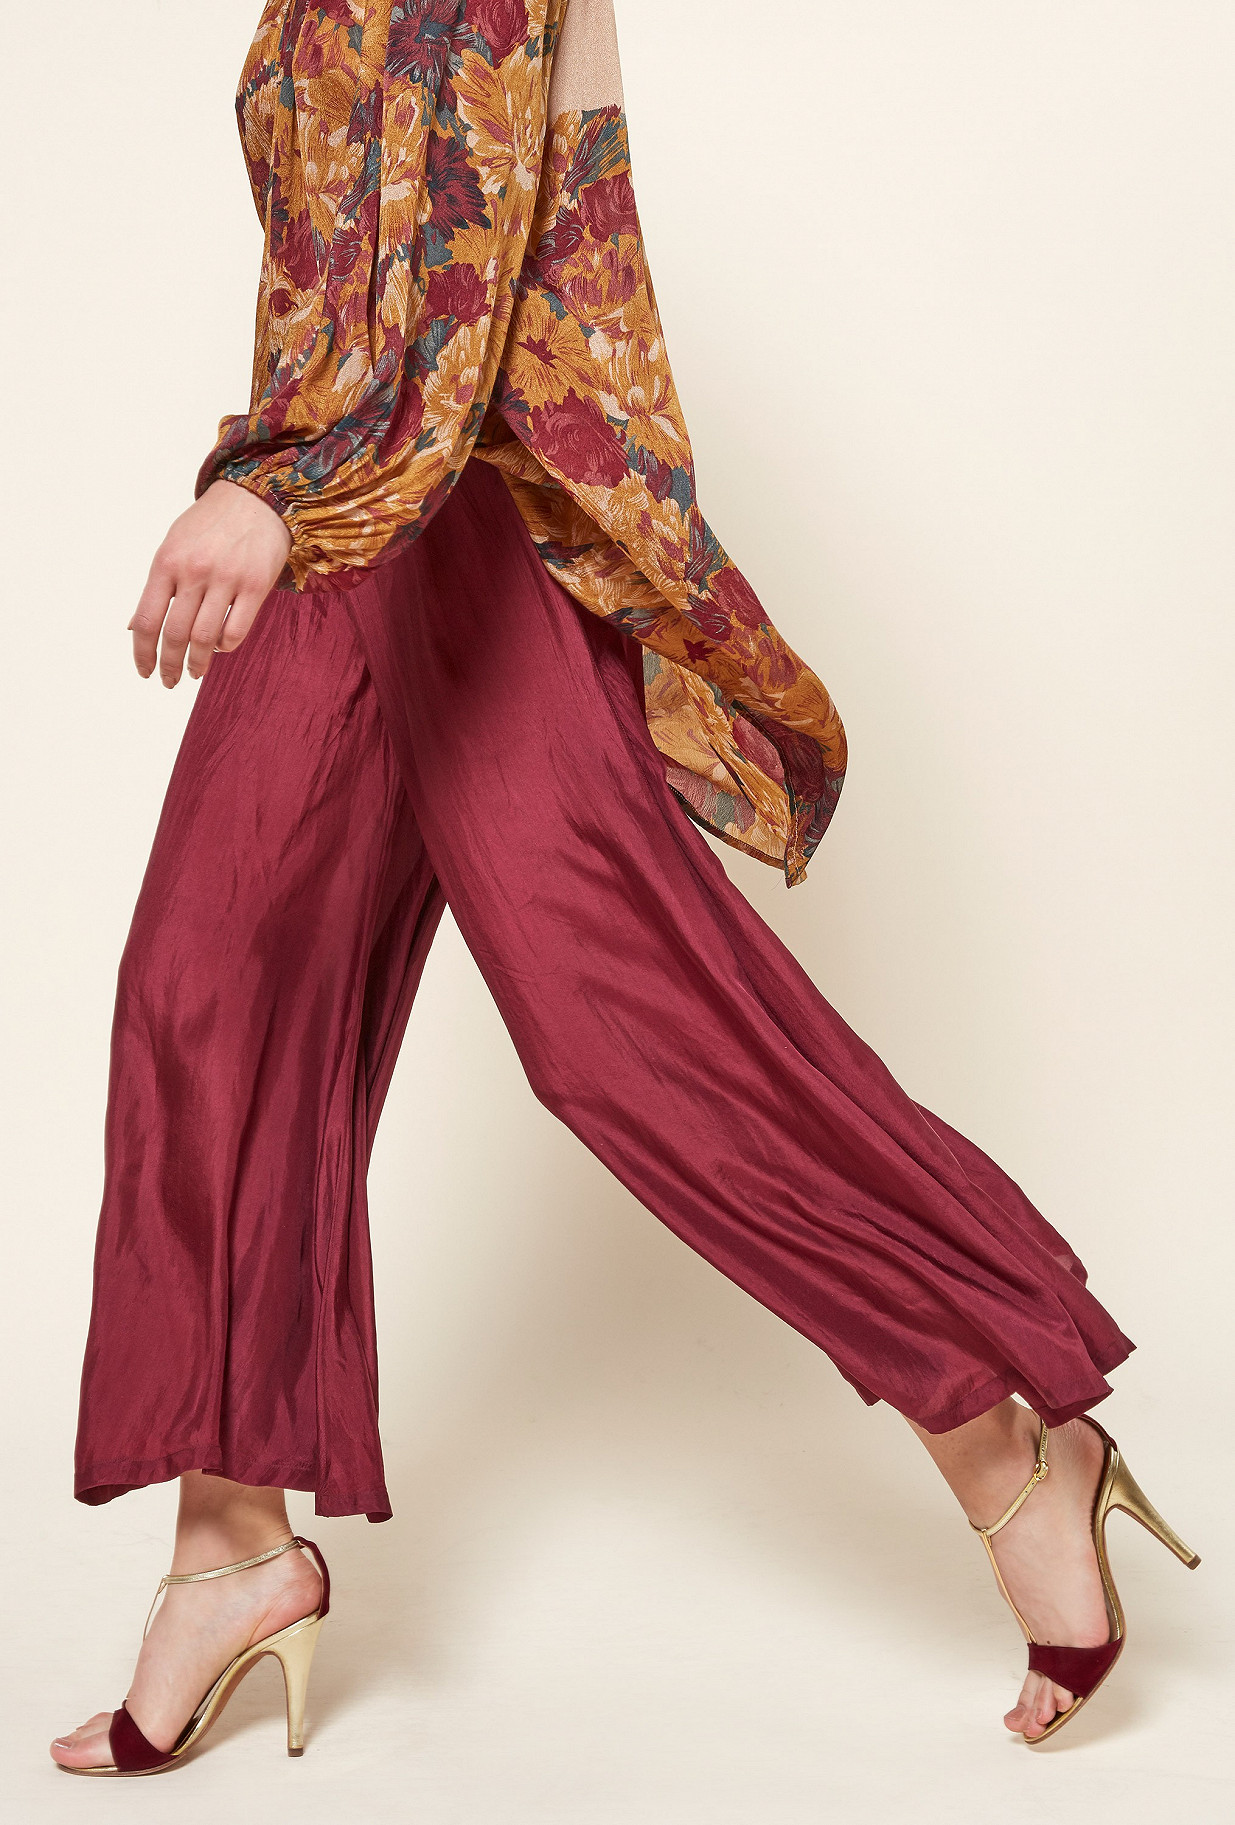 Berry  PANT  Phoebus Mes demoiselles fashion clothes designer Paris